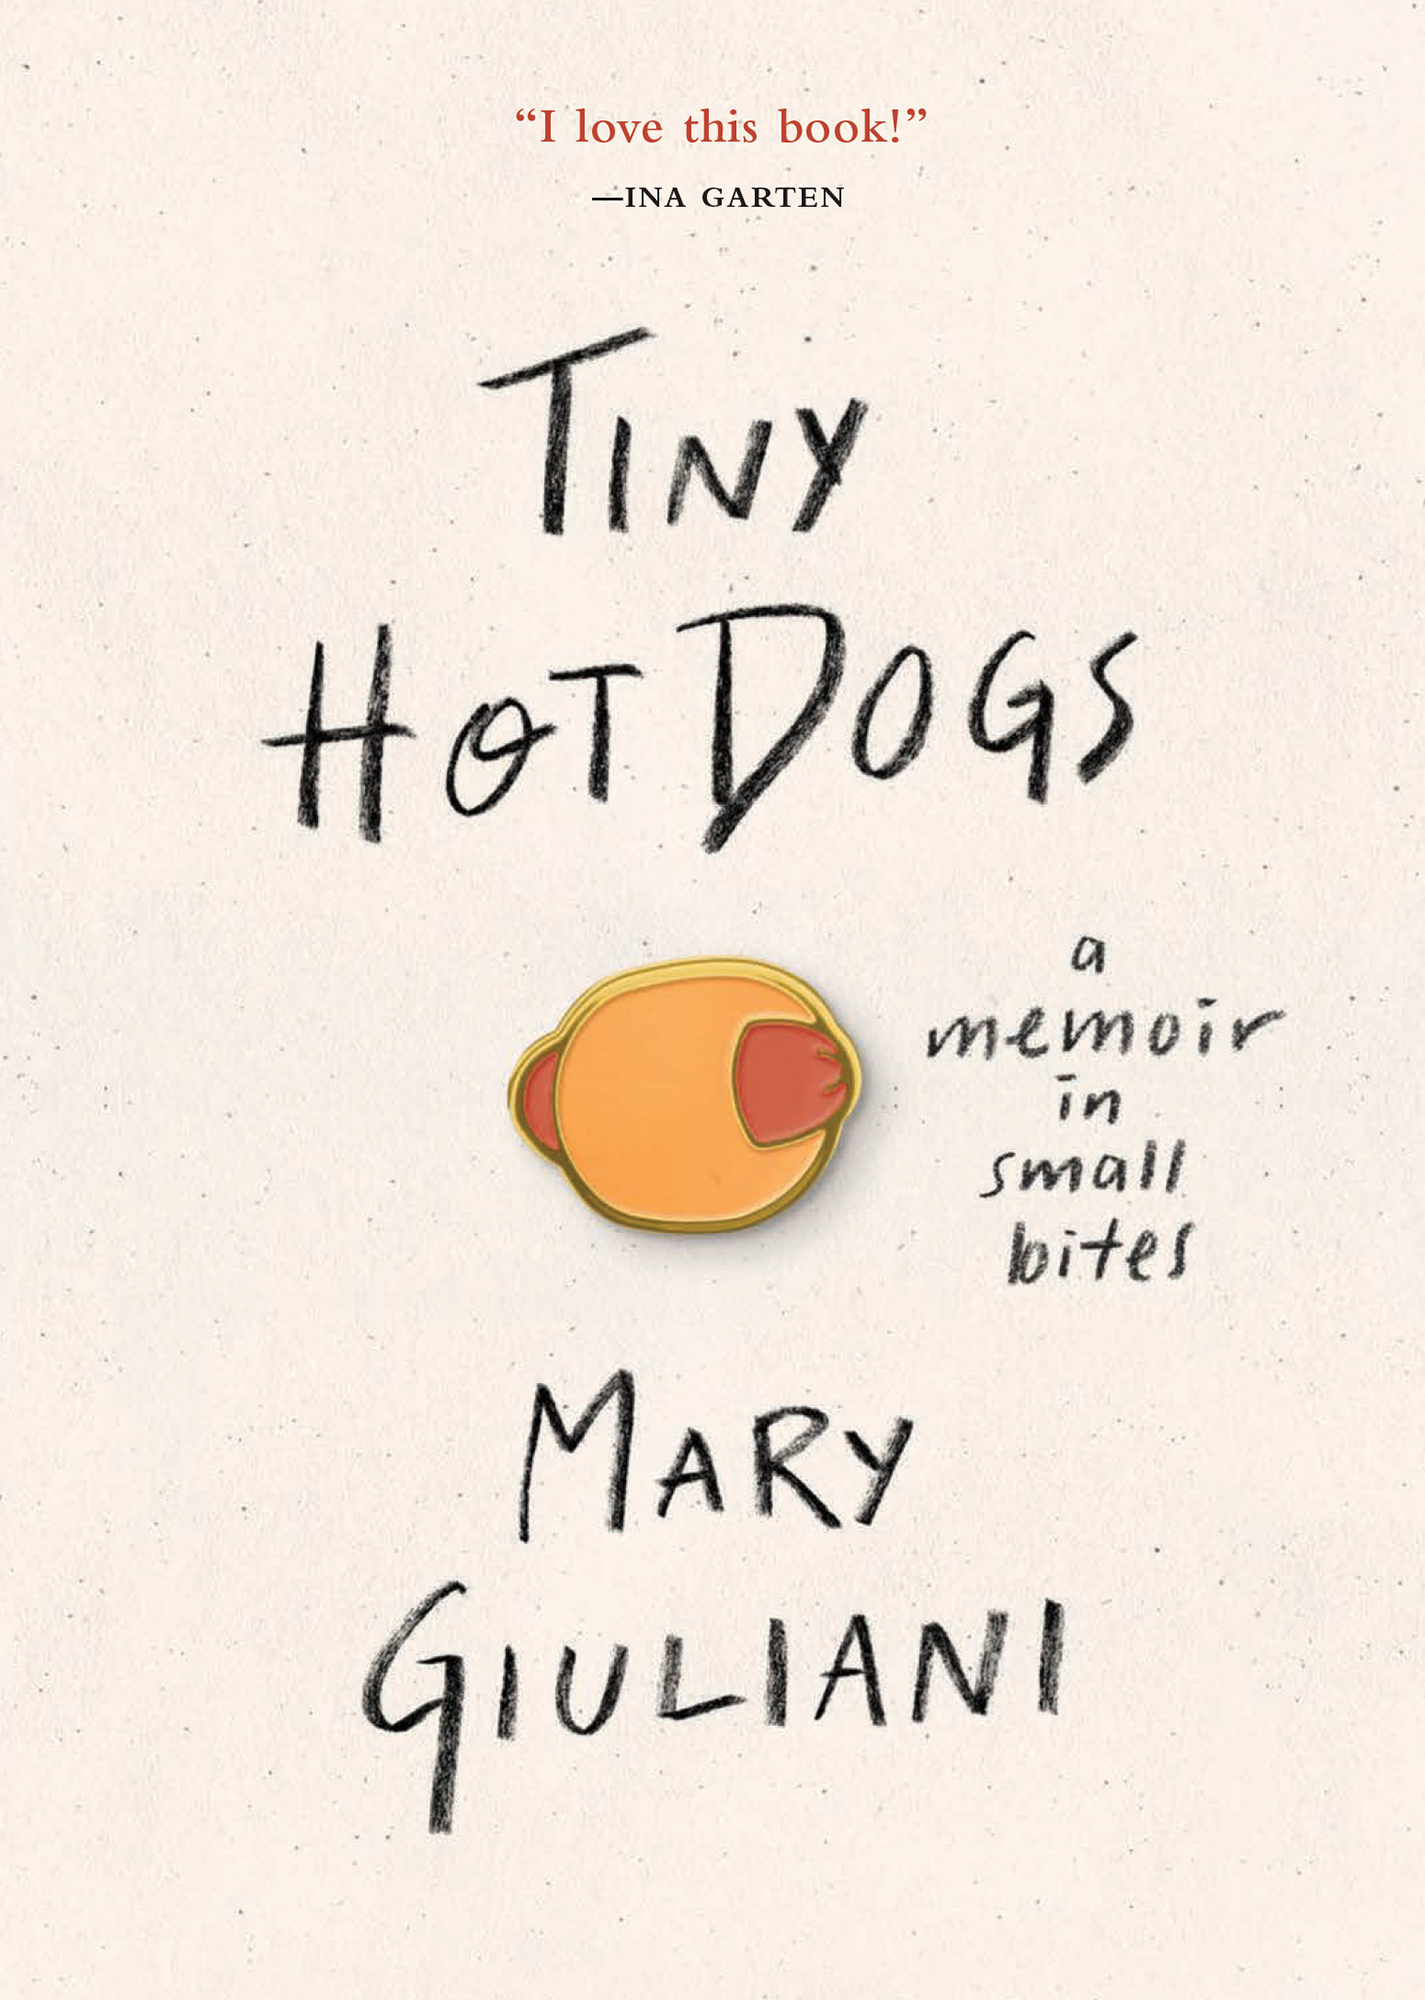 tiny-hot-dogs - Rachael Ray loves this Tiny Hot Dogs memoir by caterer Mary Giuliani , who shares hilarious stories about celebrity encounters she has while throwing parties for the rich and famous! ($16, amazon.com )